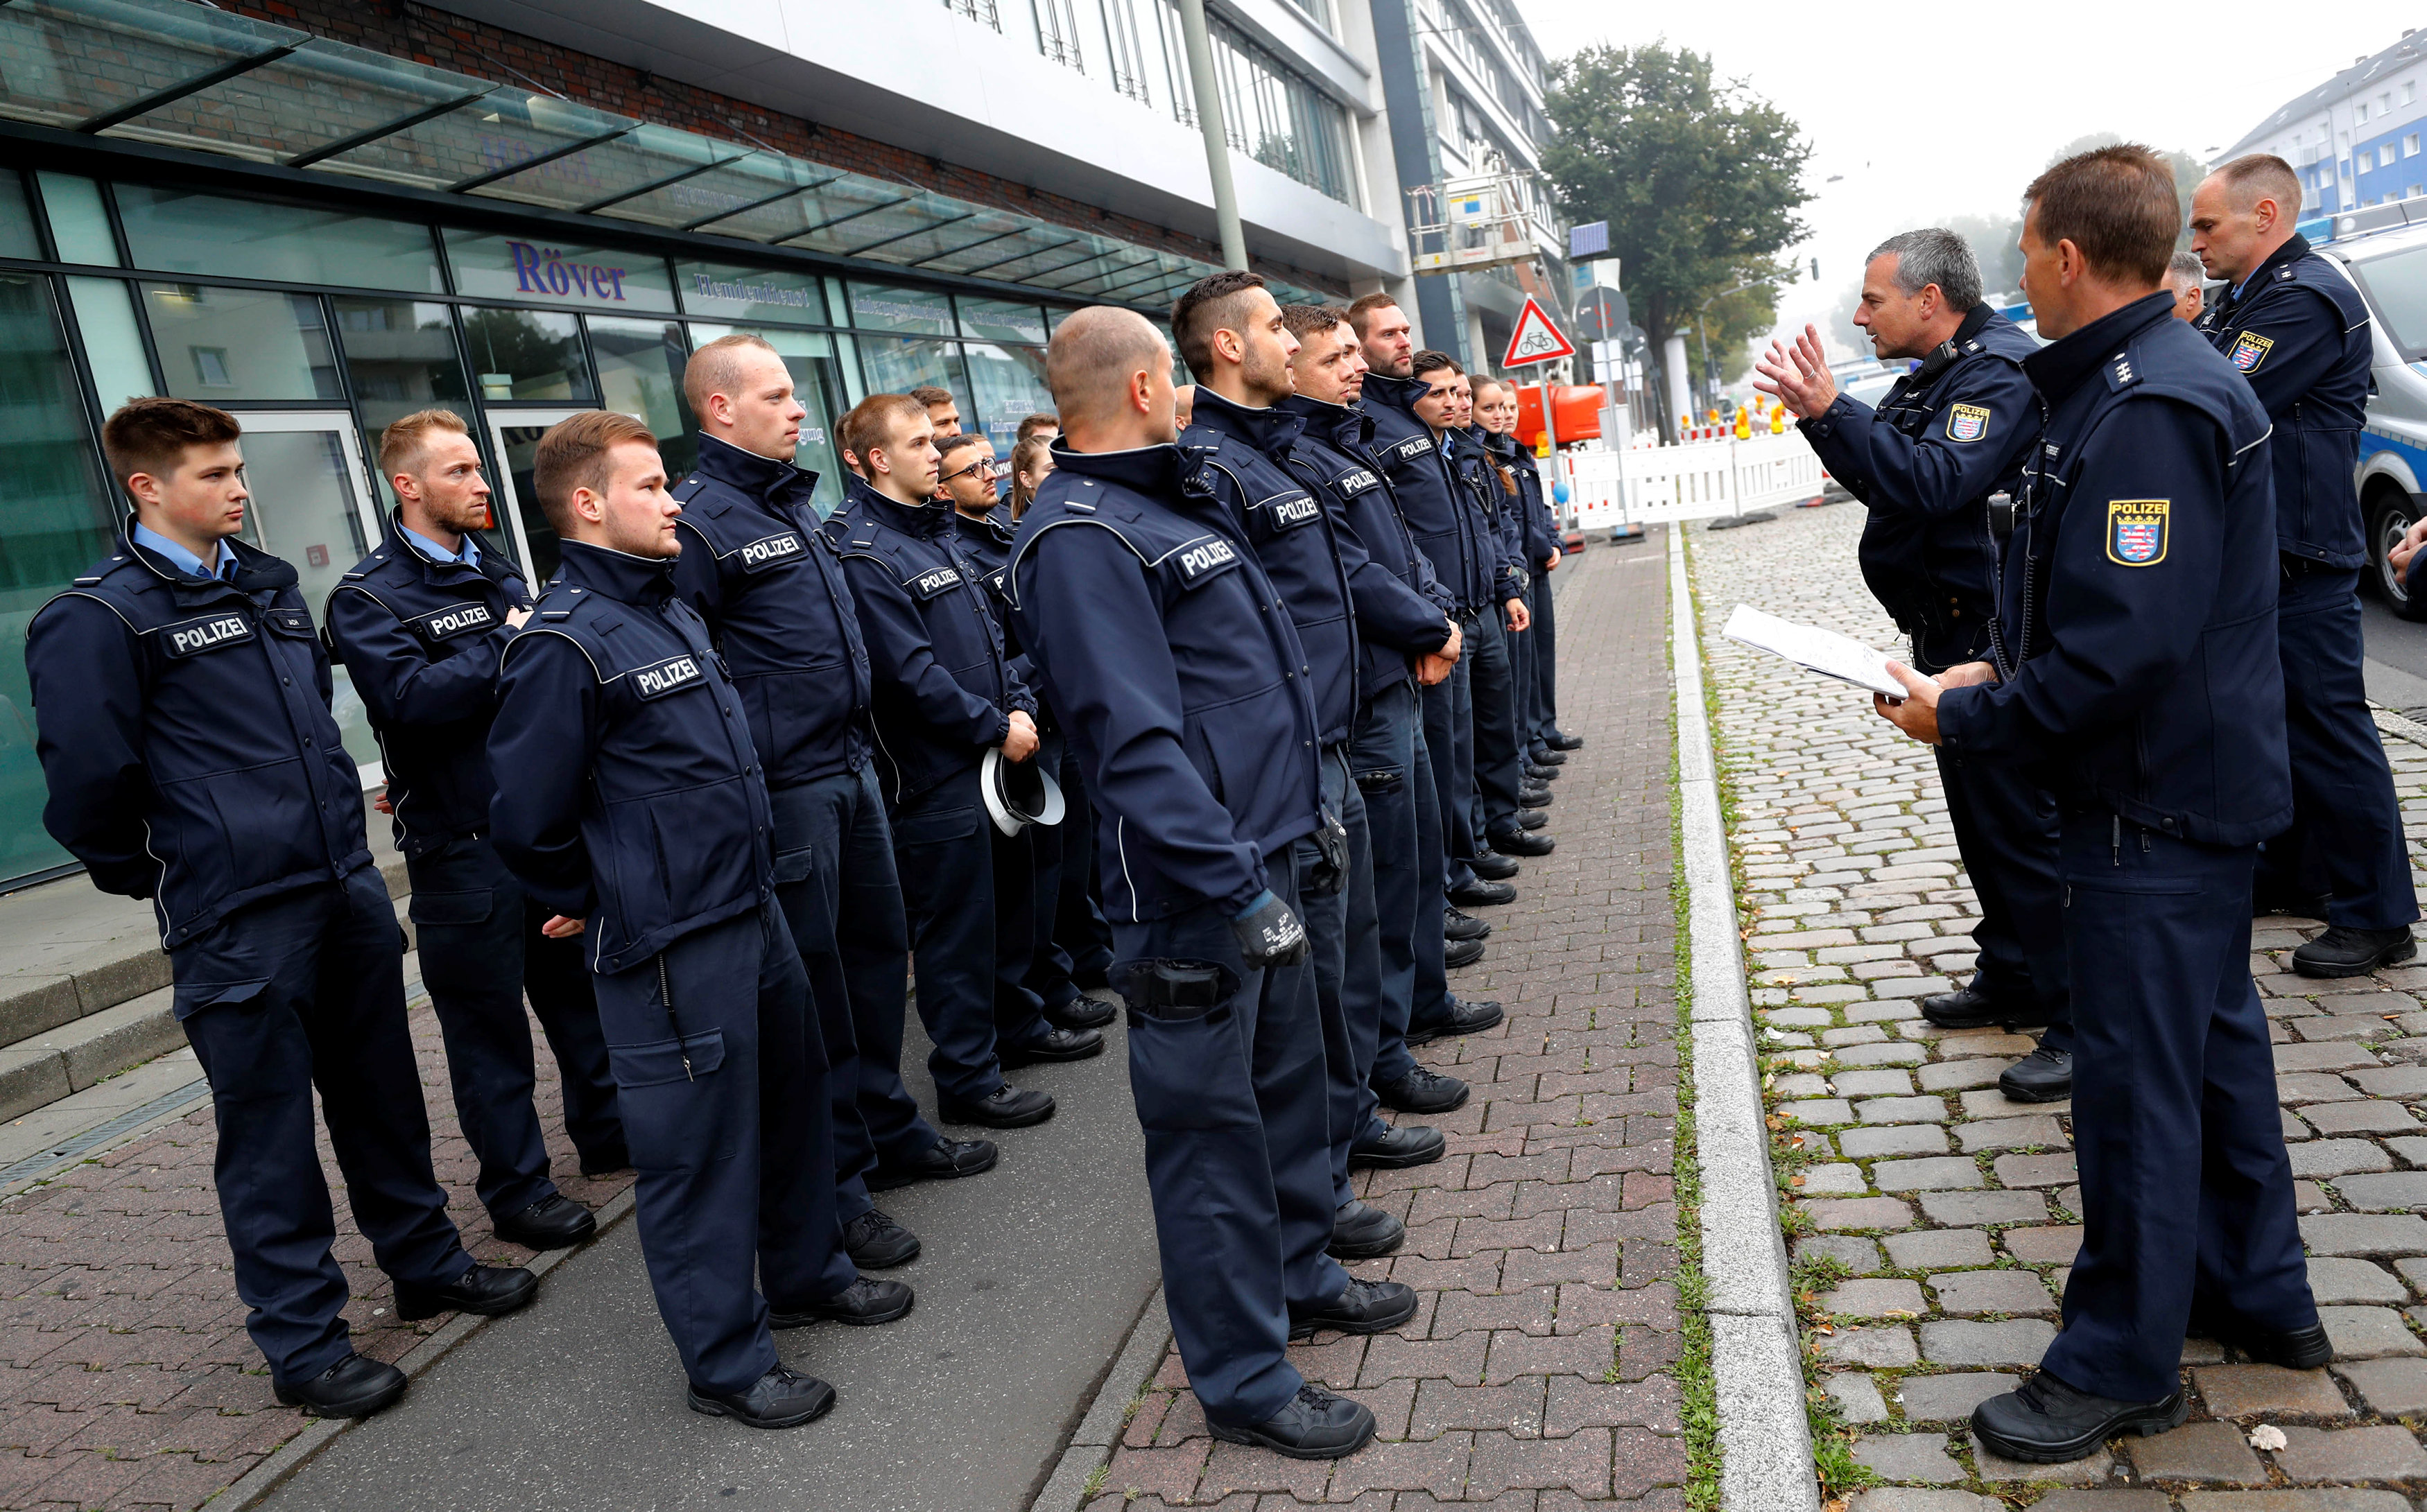 Police officers get their instructions as 60,000 people in Germany's financial capital are about to evacuate the city while experts defuse an unexploded British World War Two bomb found during renovations on the university's campus in Frankfurt, Germany on Sept. 3, 2017.  (REUTERS/Kai Pfaffenbach)